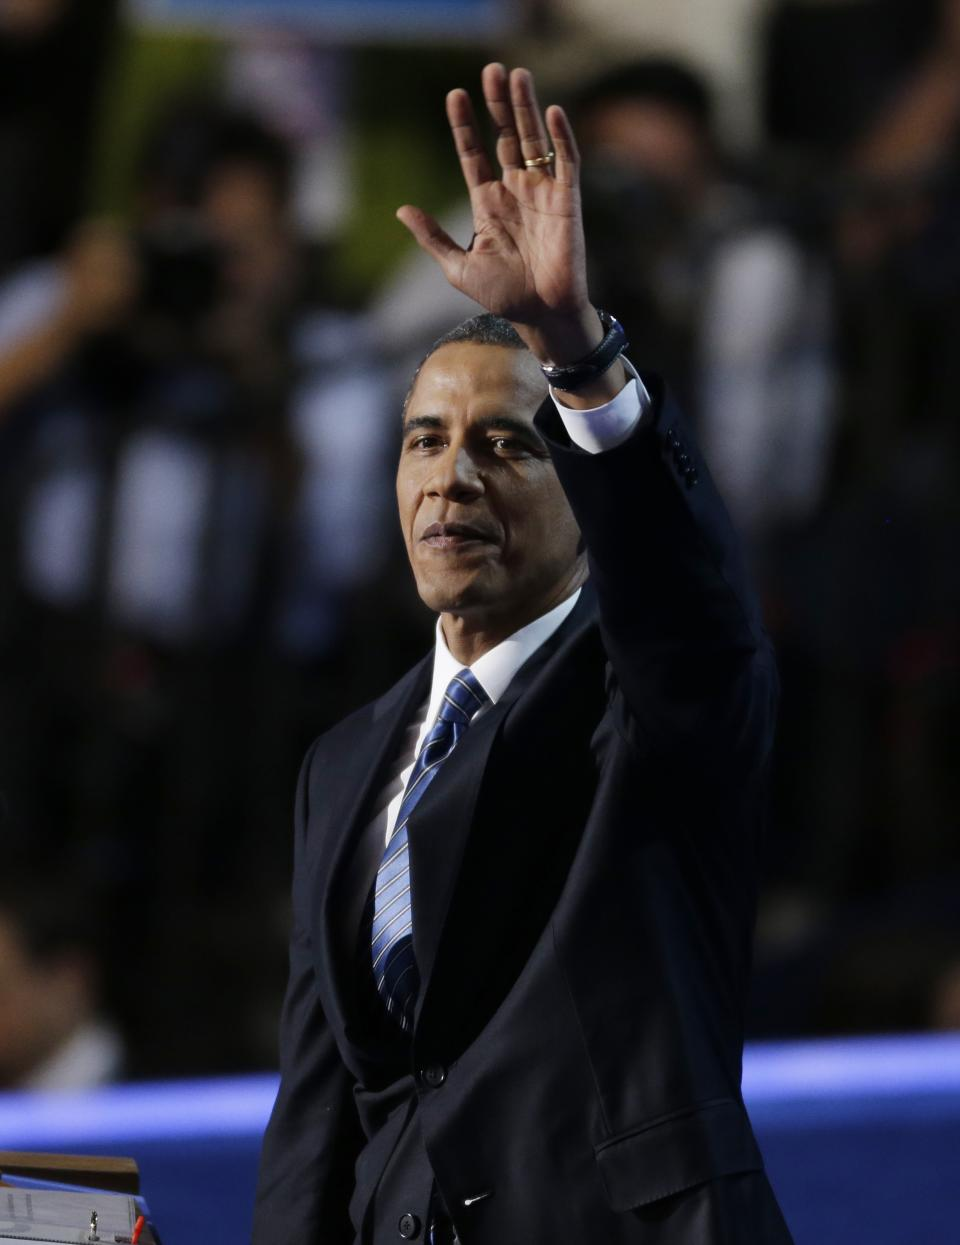 President Barack Obama waves to candidates at the Democratic National Convention in Charlotte, N.C., on Thursday, Sept. 6, 2012. (AP Photo/Lynne Sladky)